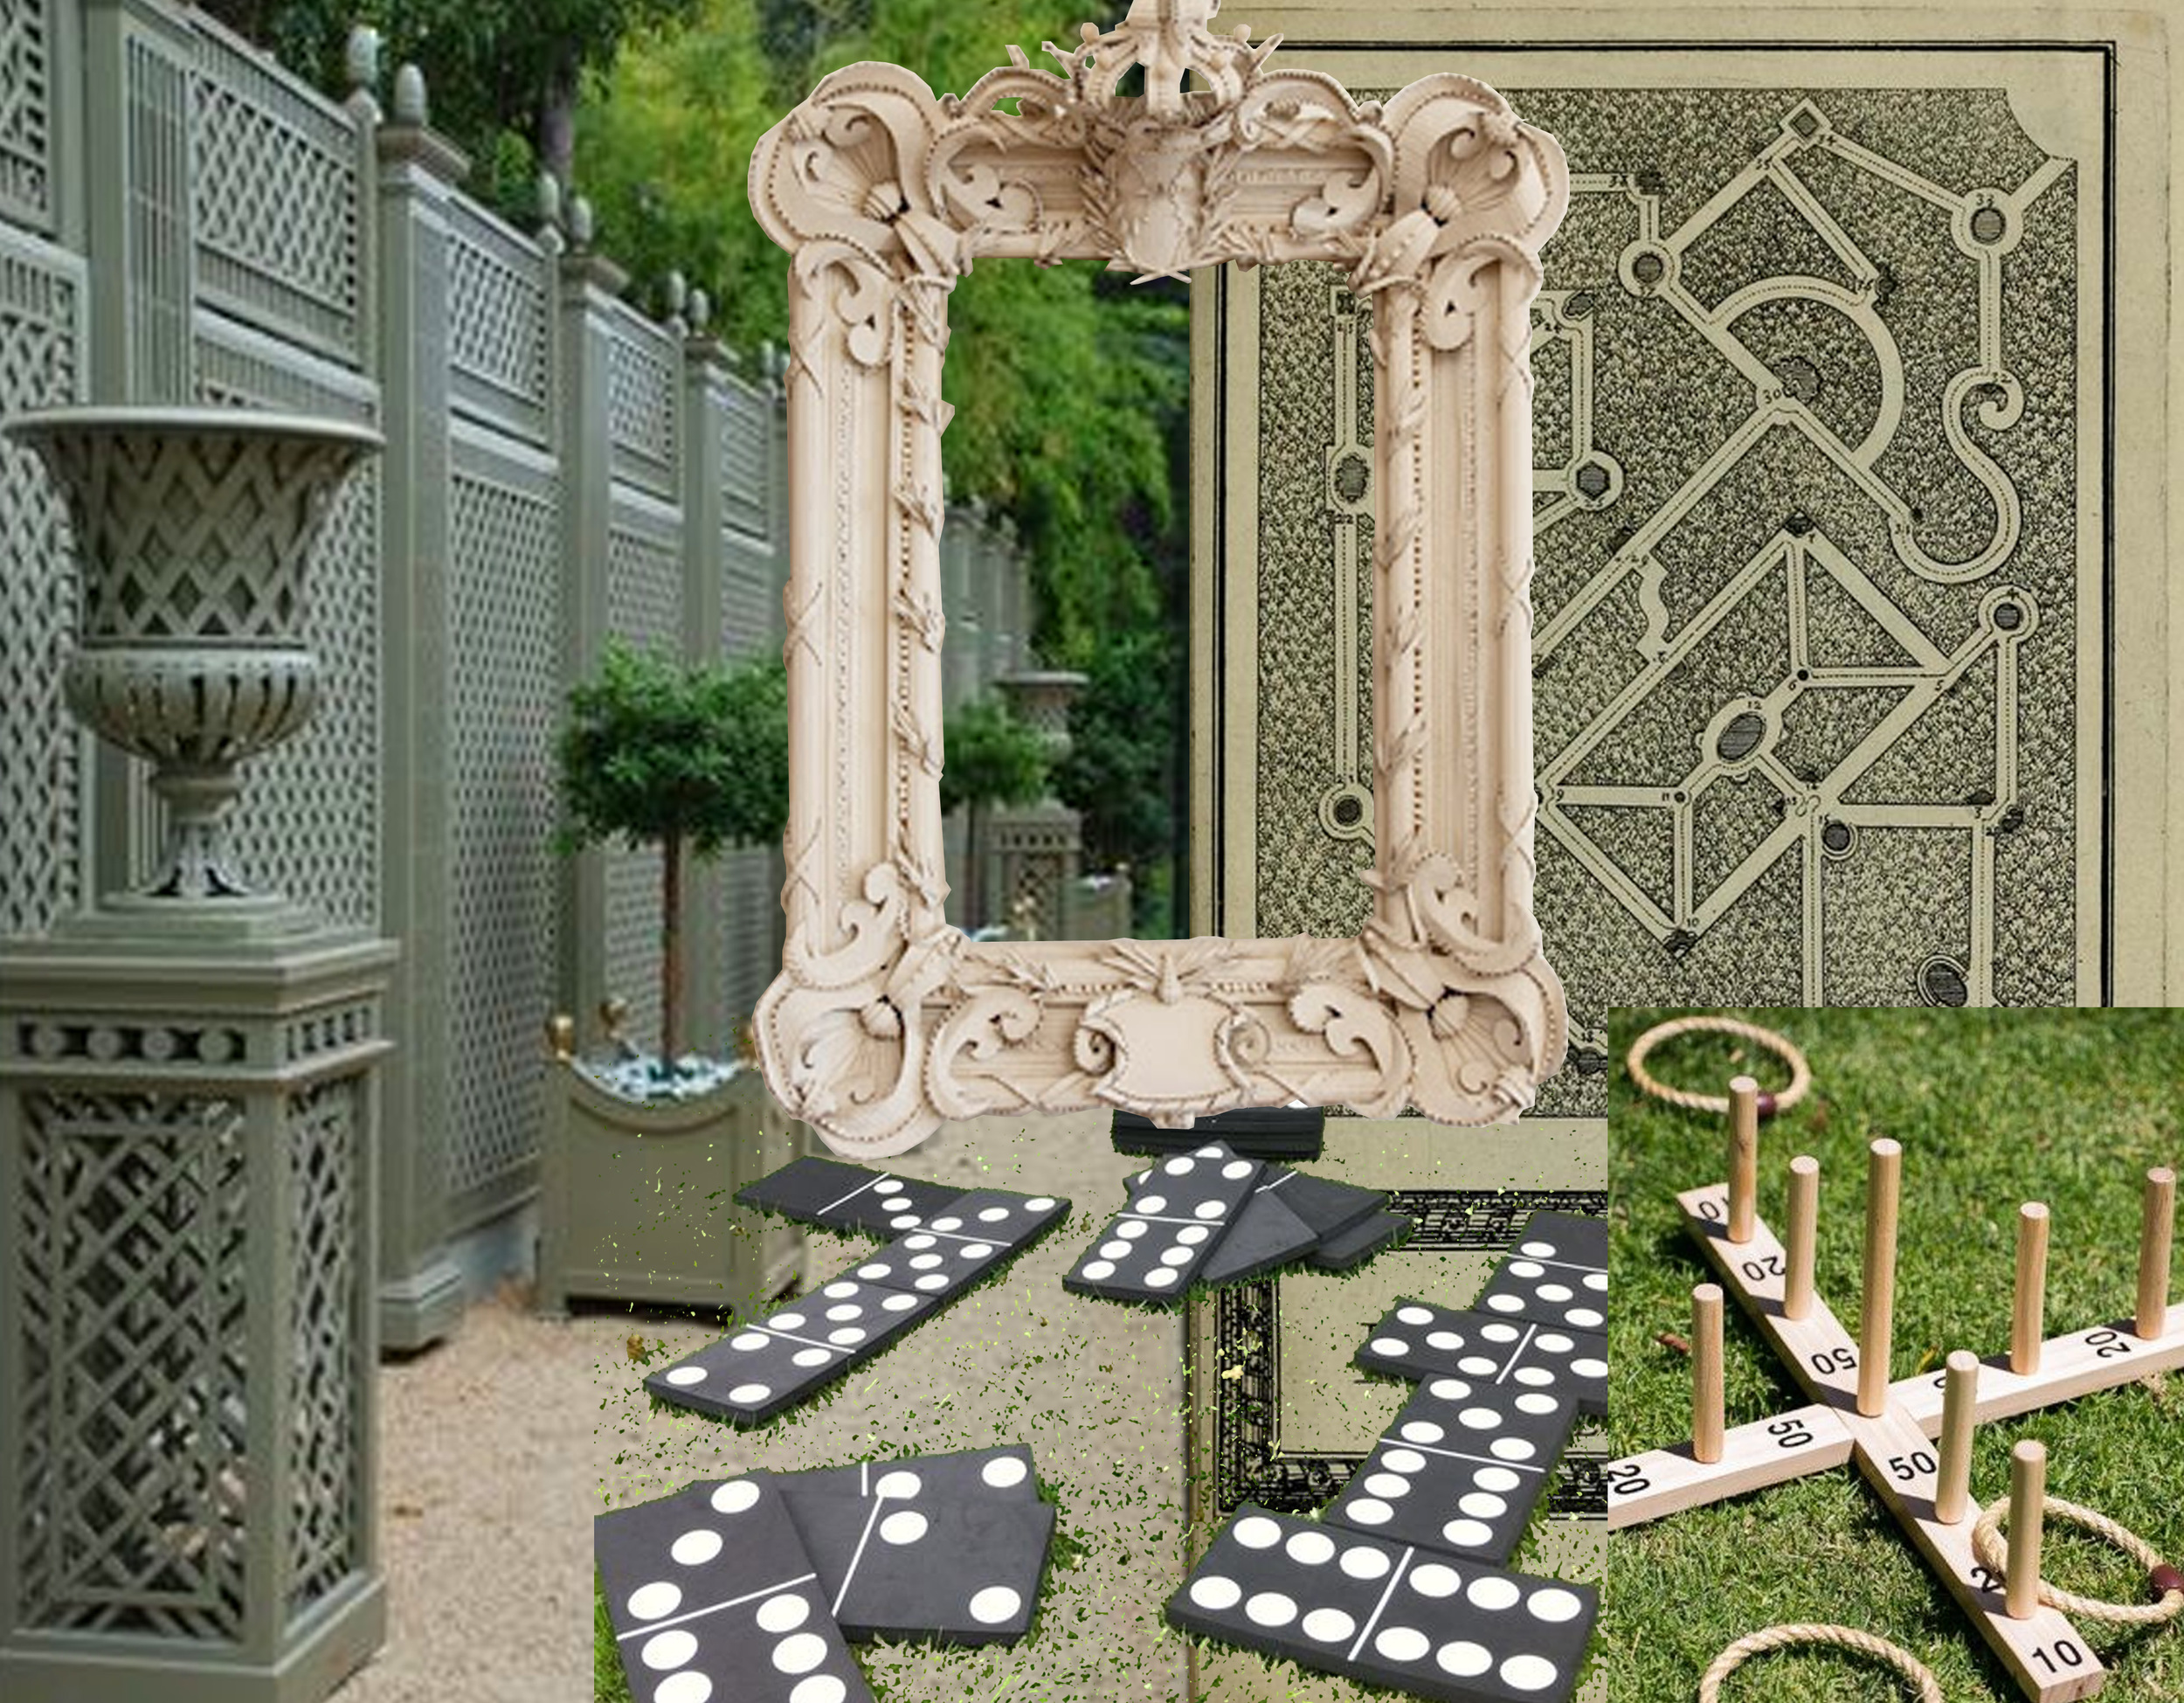 treillage  Accents of France  - wooden game via  The Pretty Blog  - XL domino via  Mariage  - Labyrinth de Versailles  Archive  - cardboard frame Herve Pierre via  Apartment Therapy